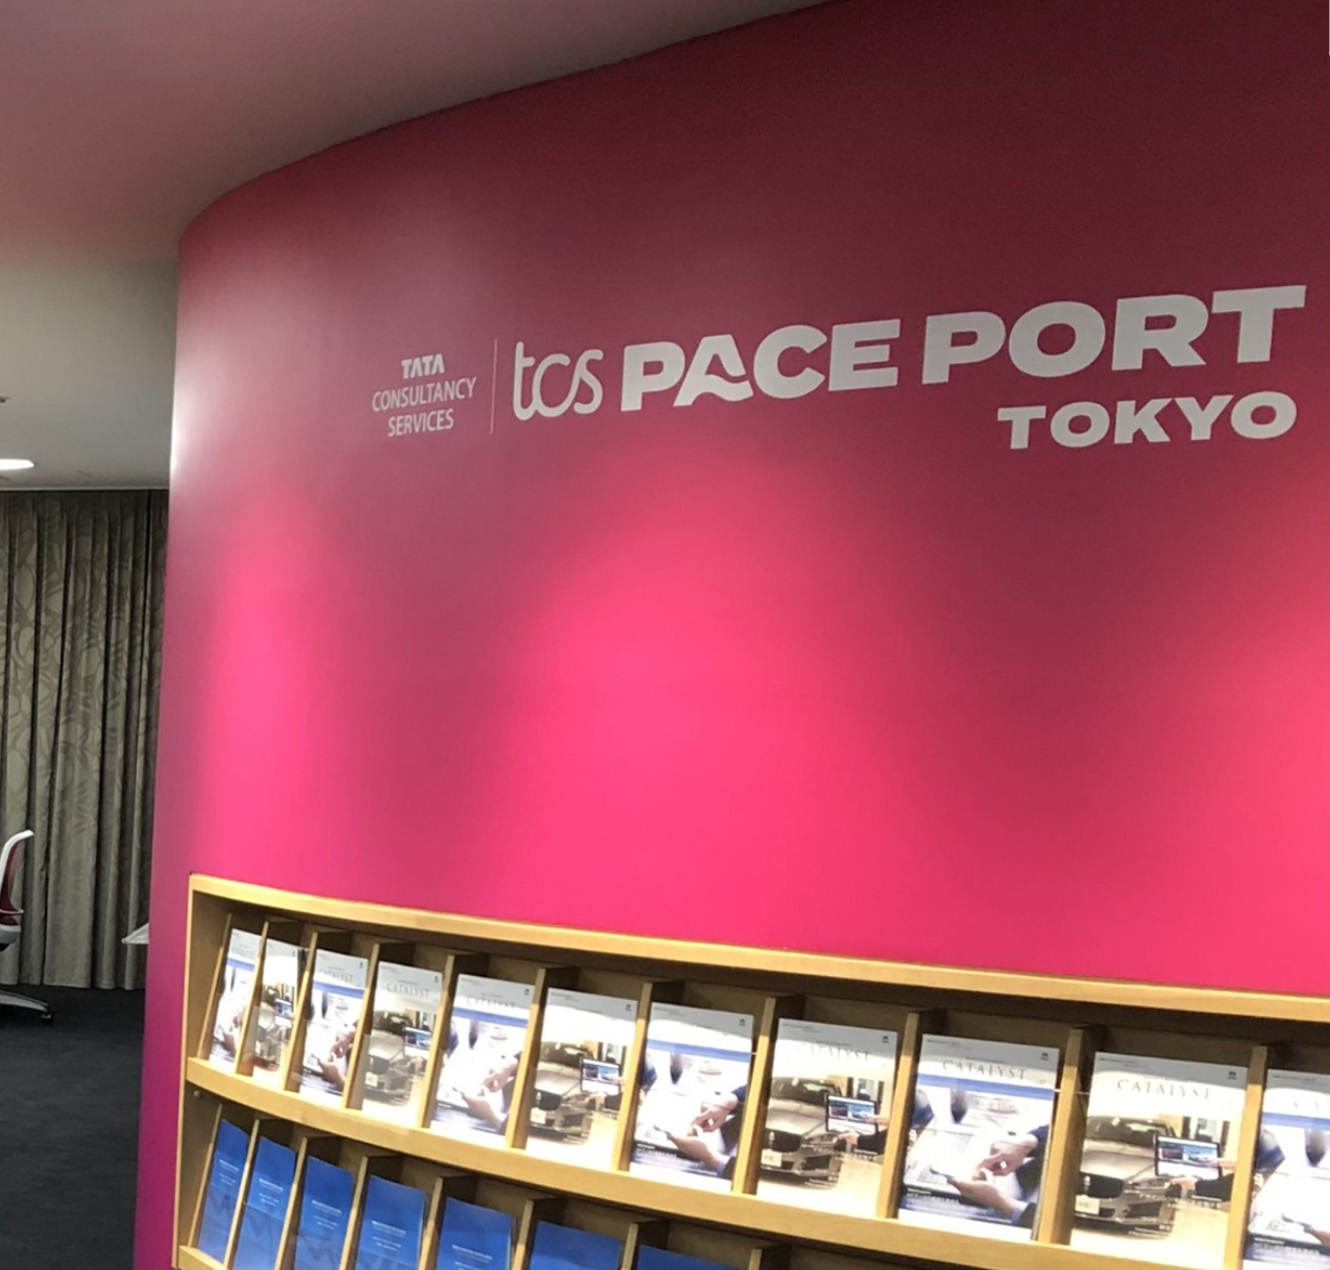 TCS PACE PORT TOKYO